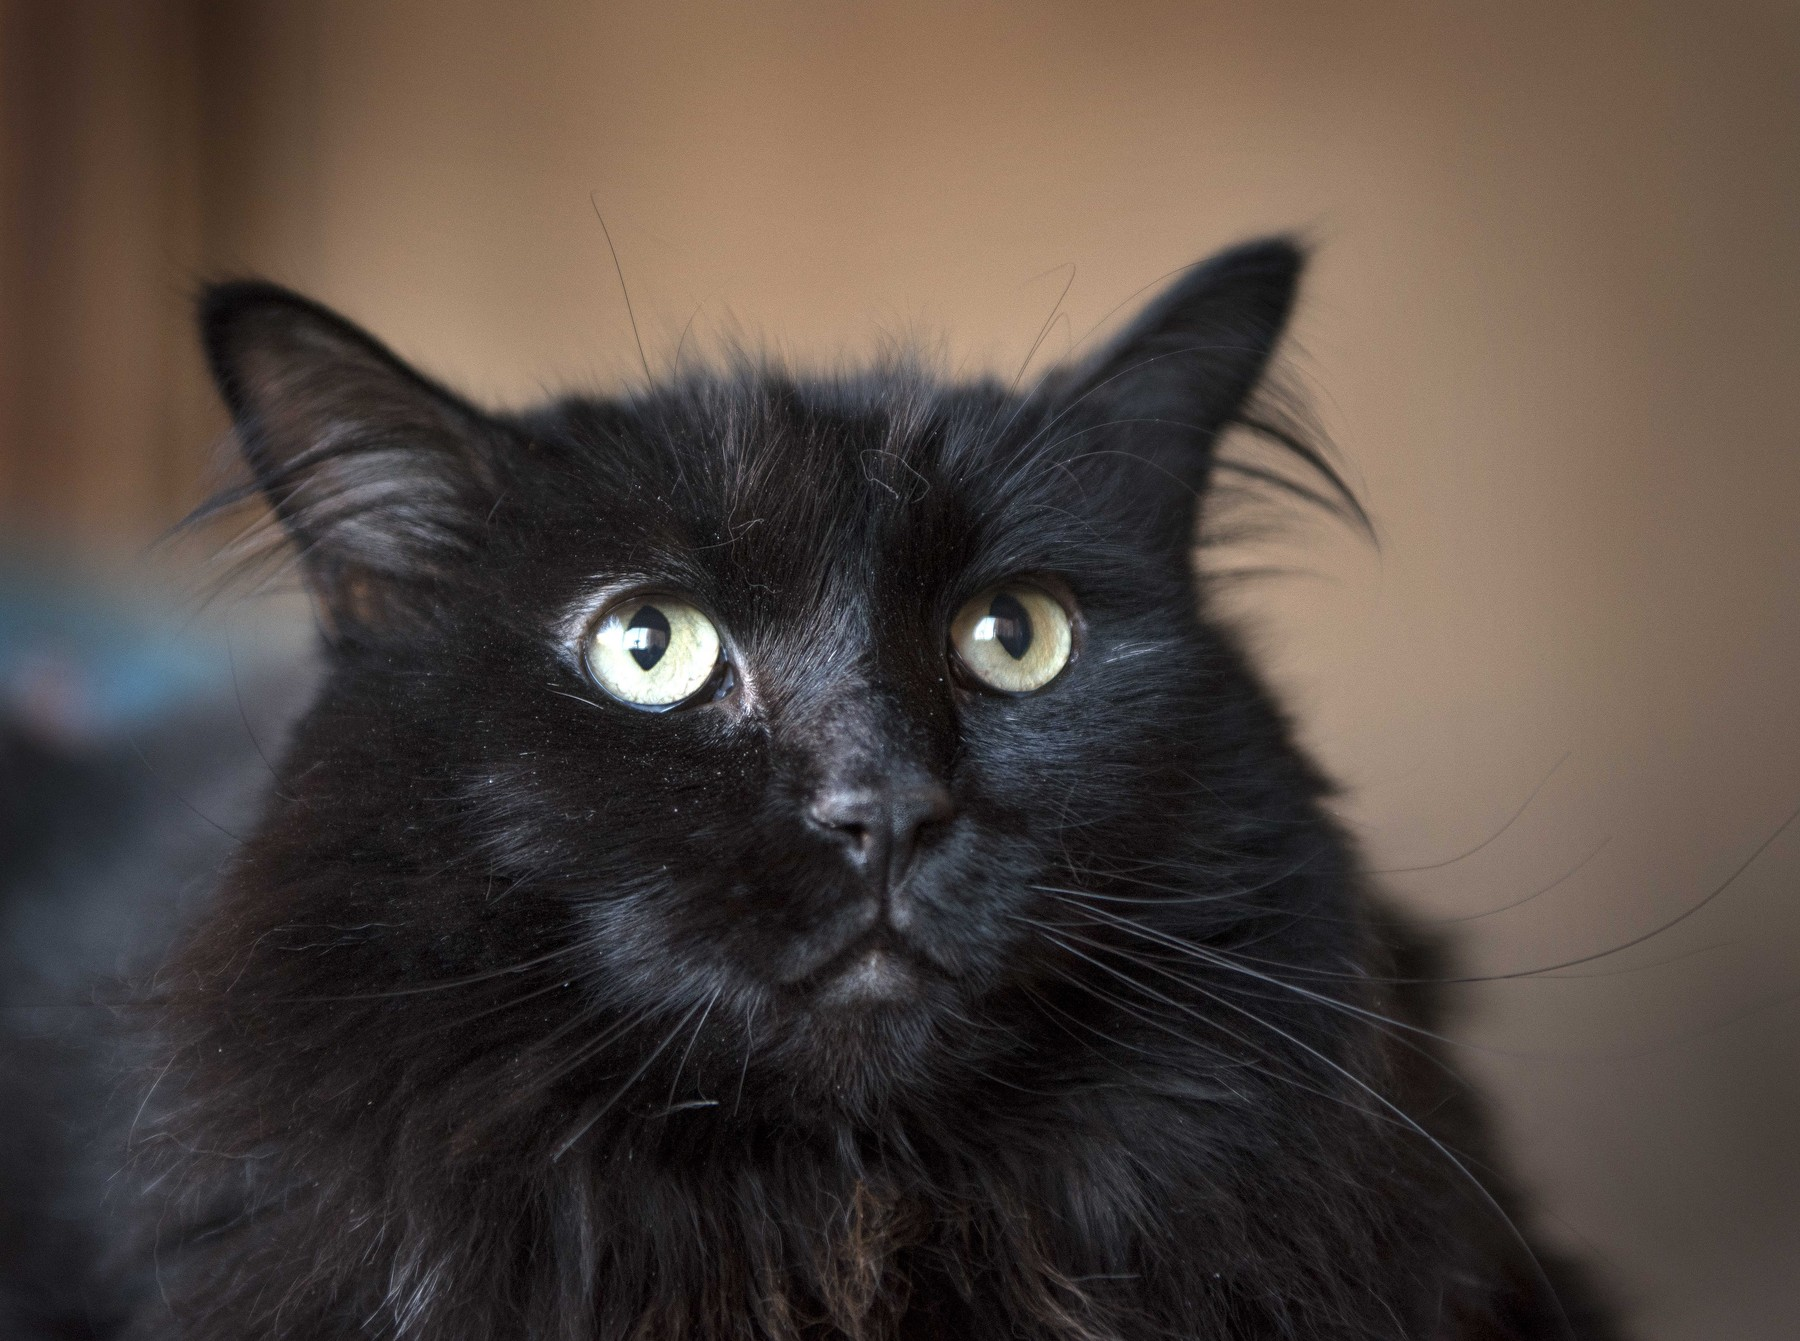 November 18, 2019, USA: Sasha, a black cat that was picked up off the street in Santa Fe, is be reunited with his owner in Portland Oregon after being lost around 5 years ago. Sasha is at the Santa Fe Animal Shelter and Humane Society, Monday November 18, 2019., Image: 483583853, License: Rights-managed, Restrictions: , Model Release: no, Credit line: Eddie Moore / Zuma Press / Profimedia